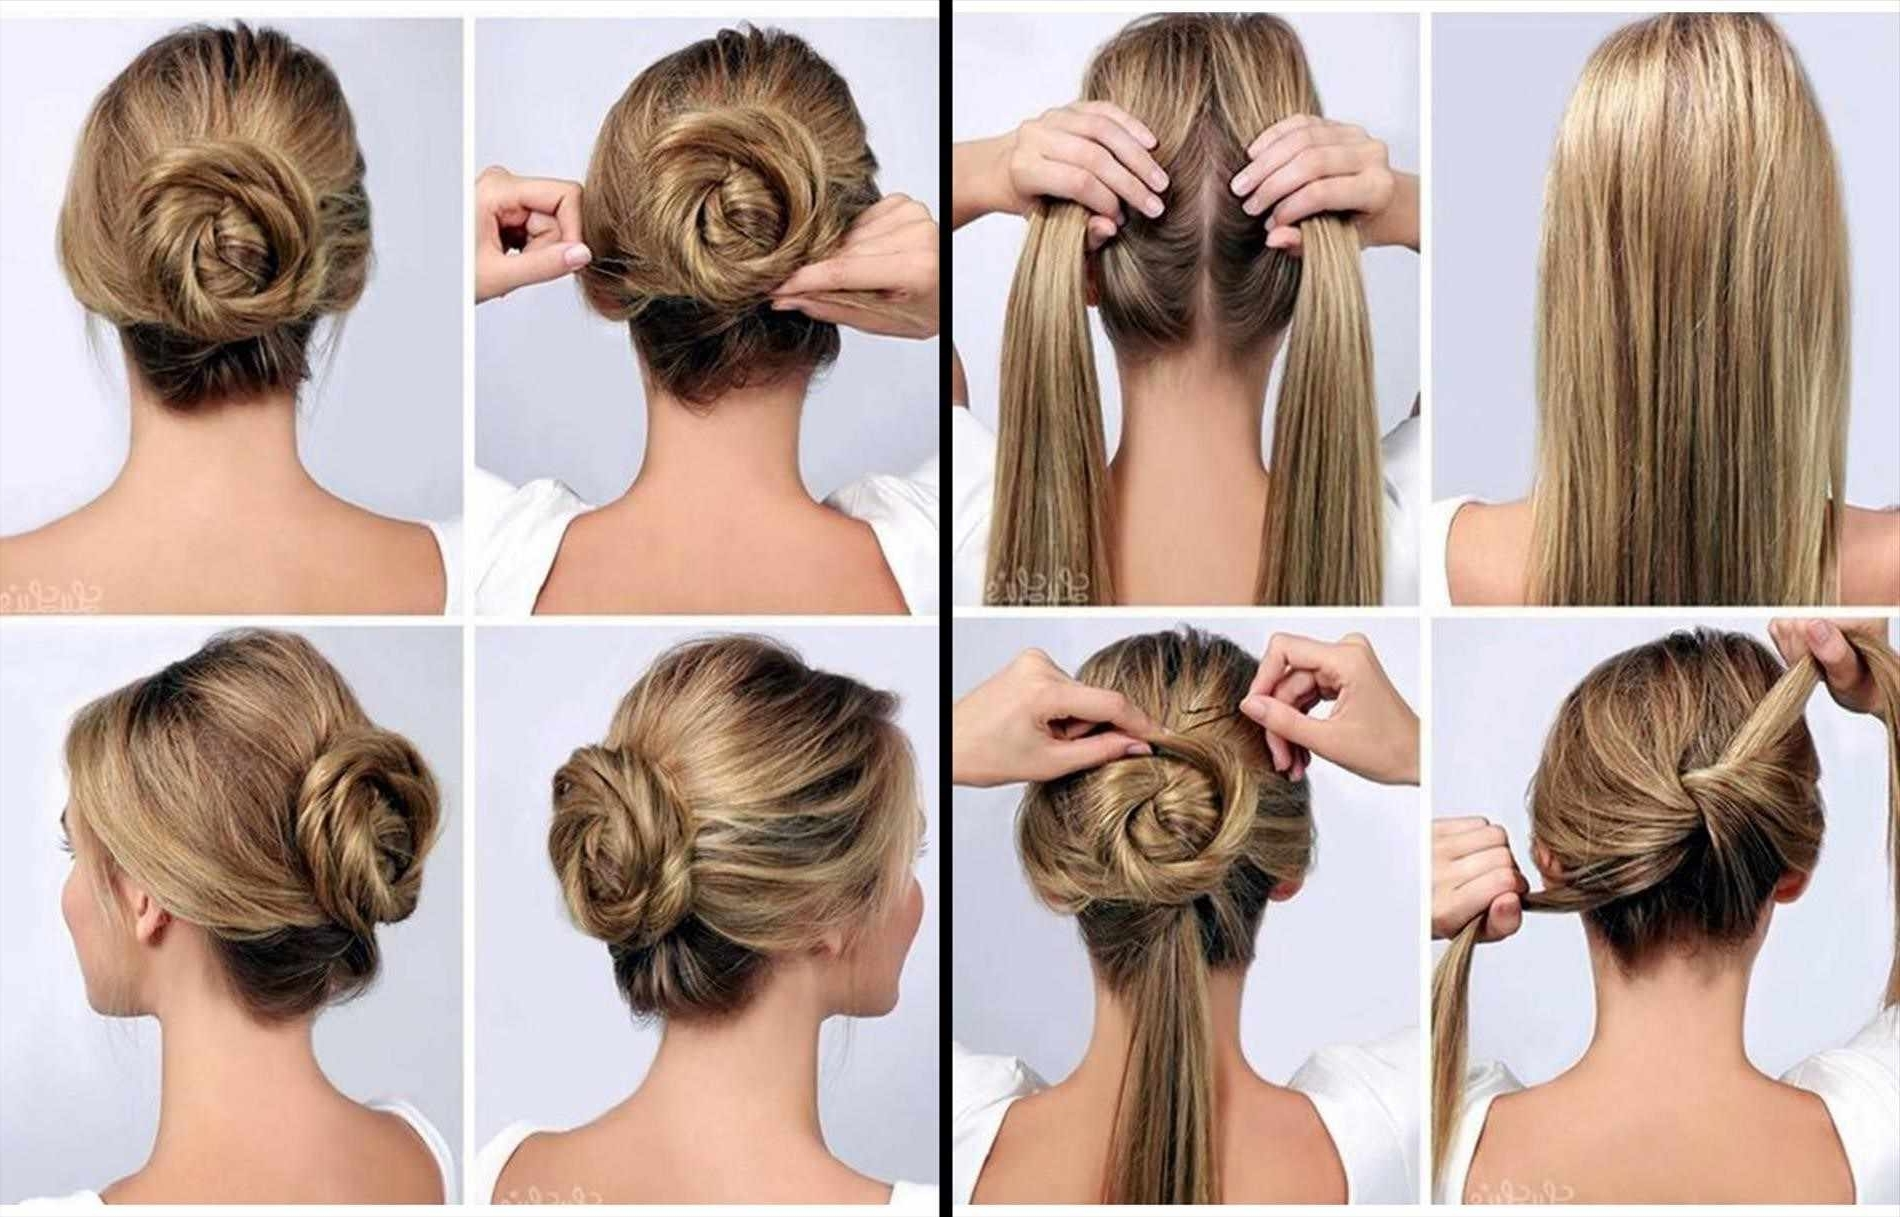 Youtube Trendy Updo Hairstyles Tutorials Easy Cute Hair Trendy Low Within Easy Low Bun Updo Hairstyles (View 15 of 15)